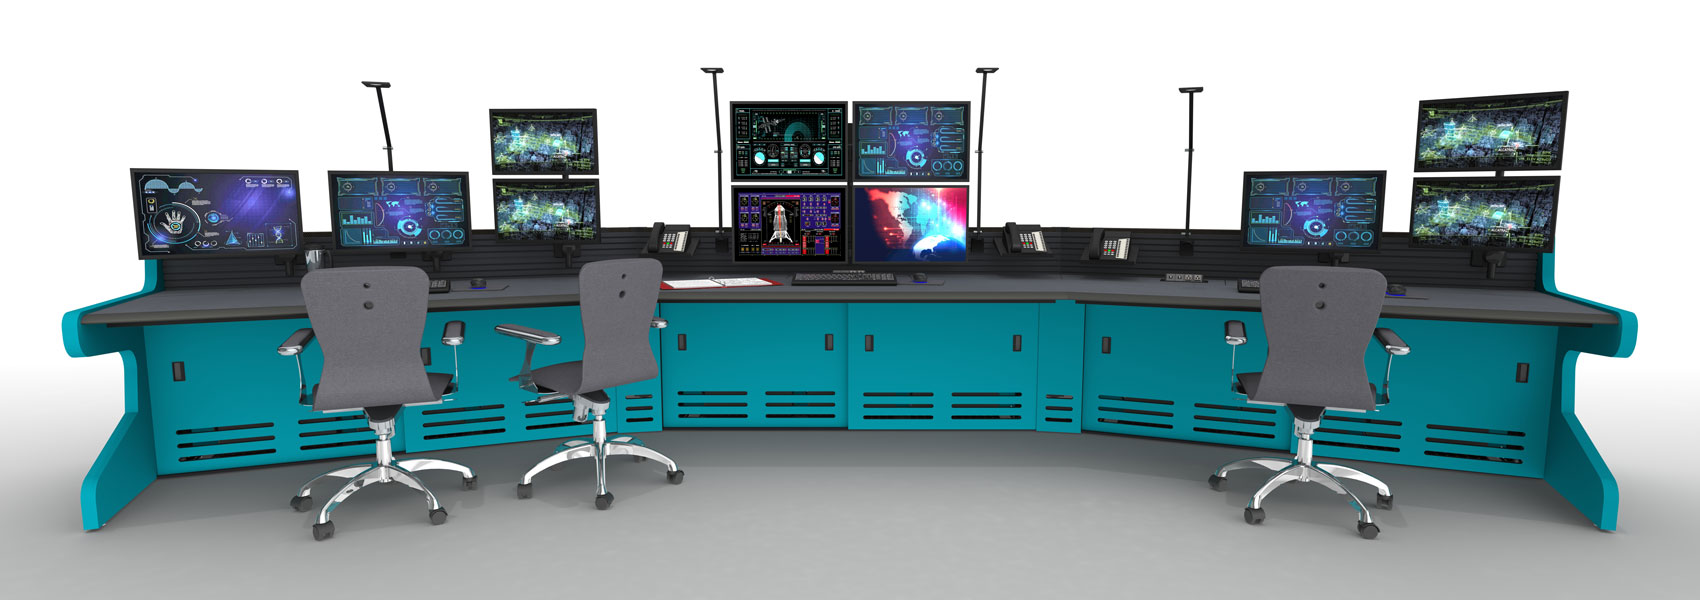 summit-enterprise-control-room-furniture-main-1700x600.